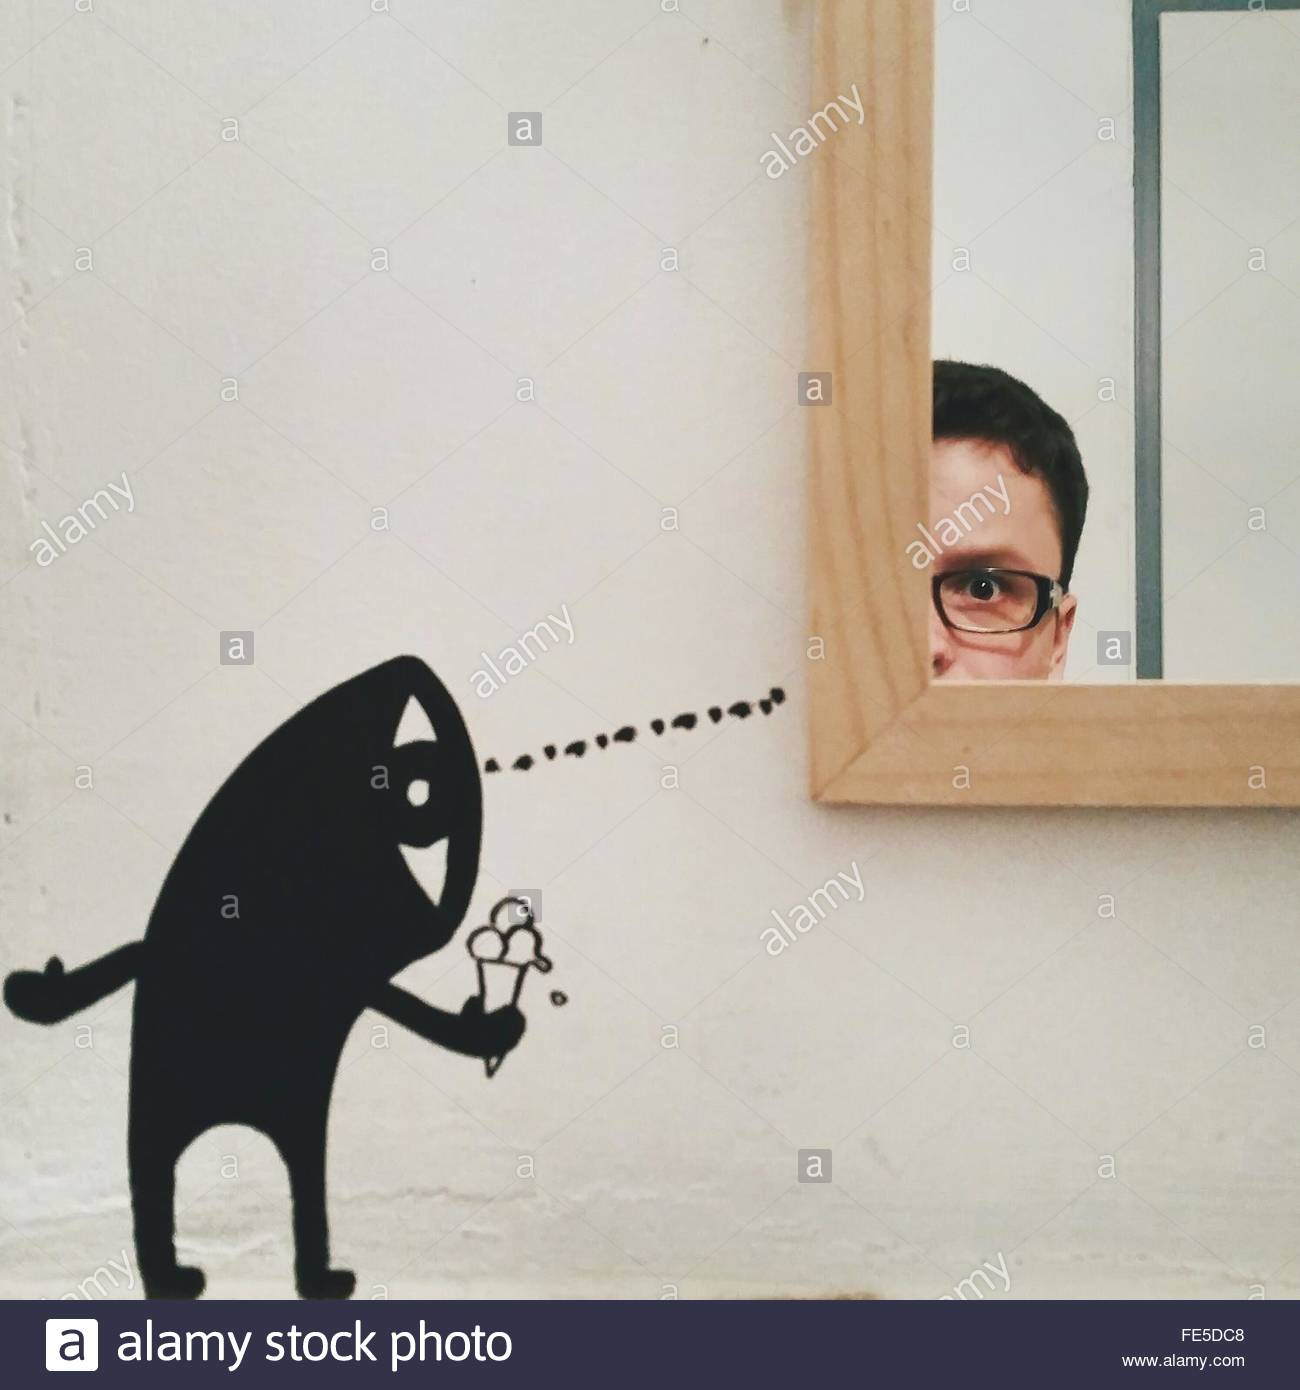 Human Painting Offering Ice Cream To Man With Reflection On Mirror - Stock Image